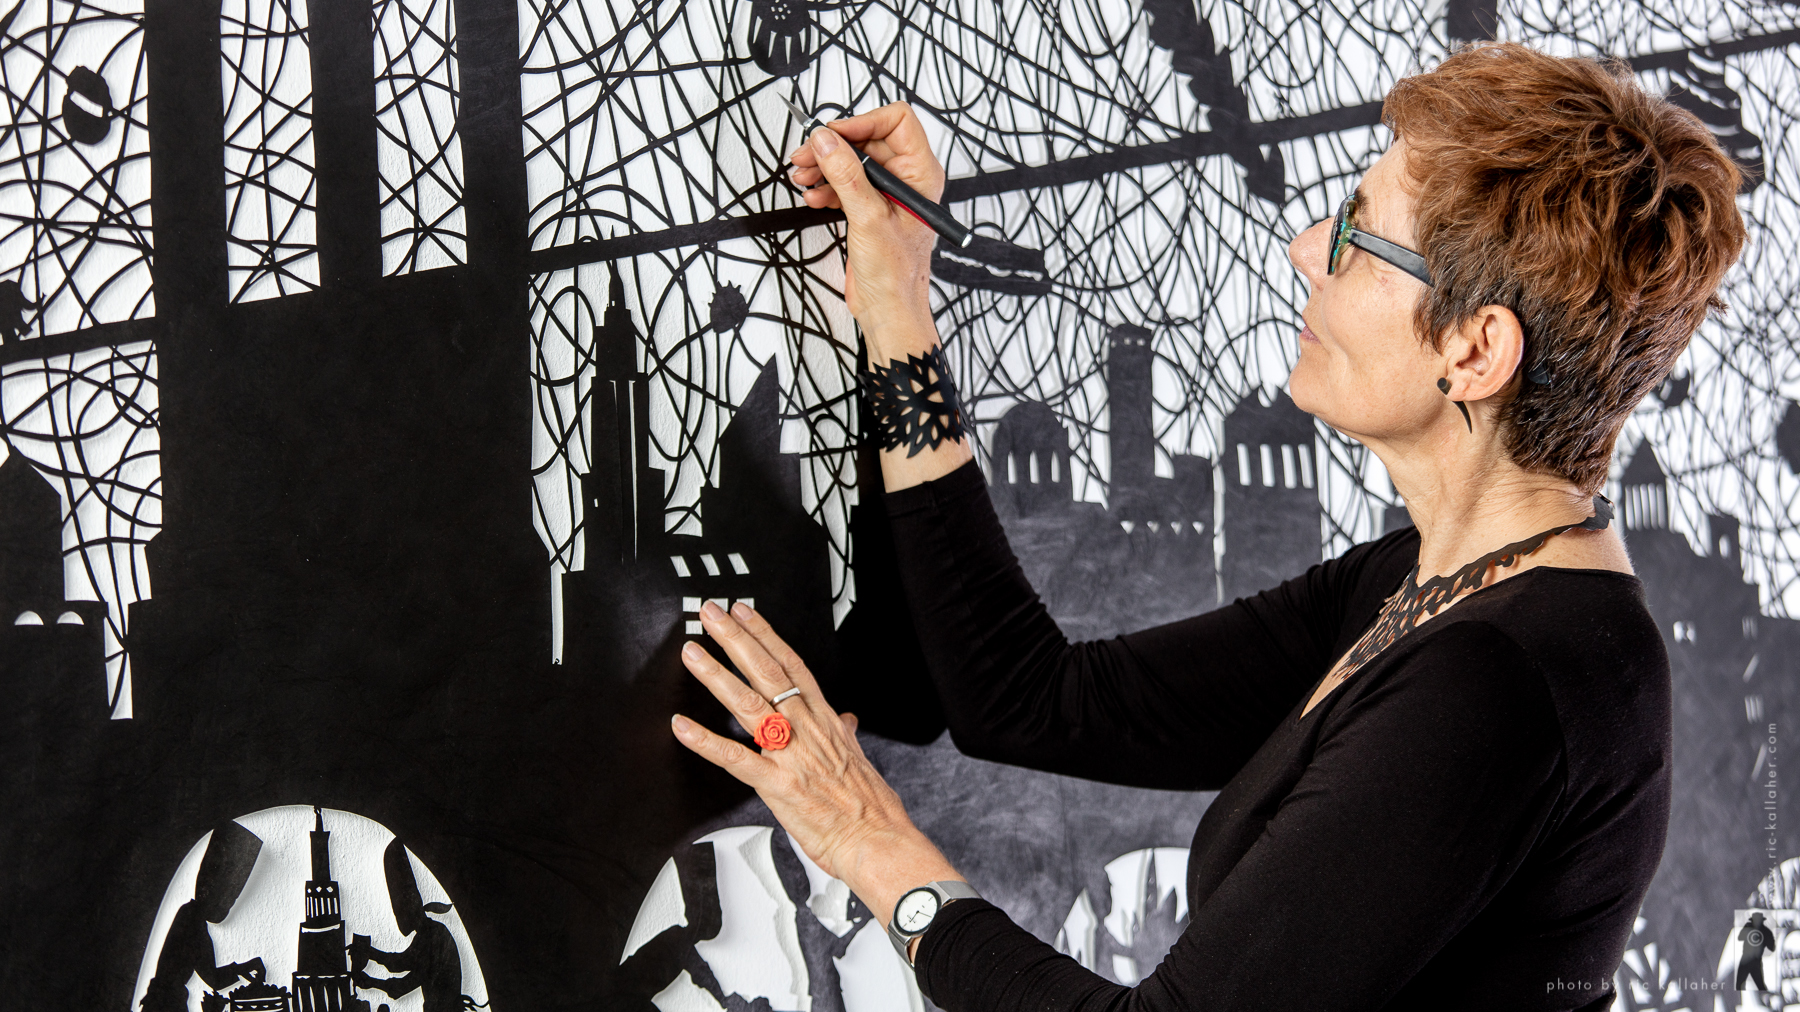 Beatrice working on a large papercut of a city skyline